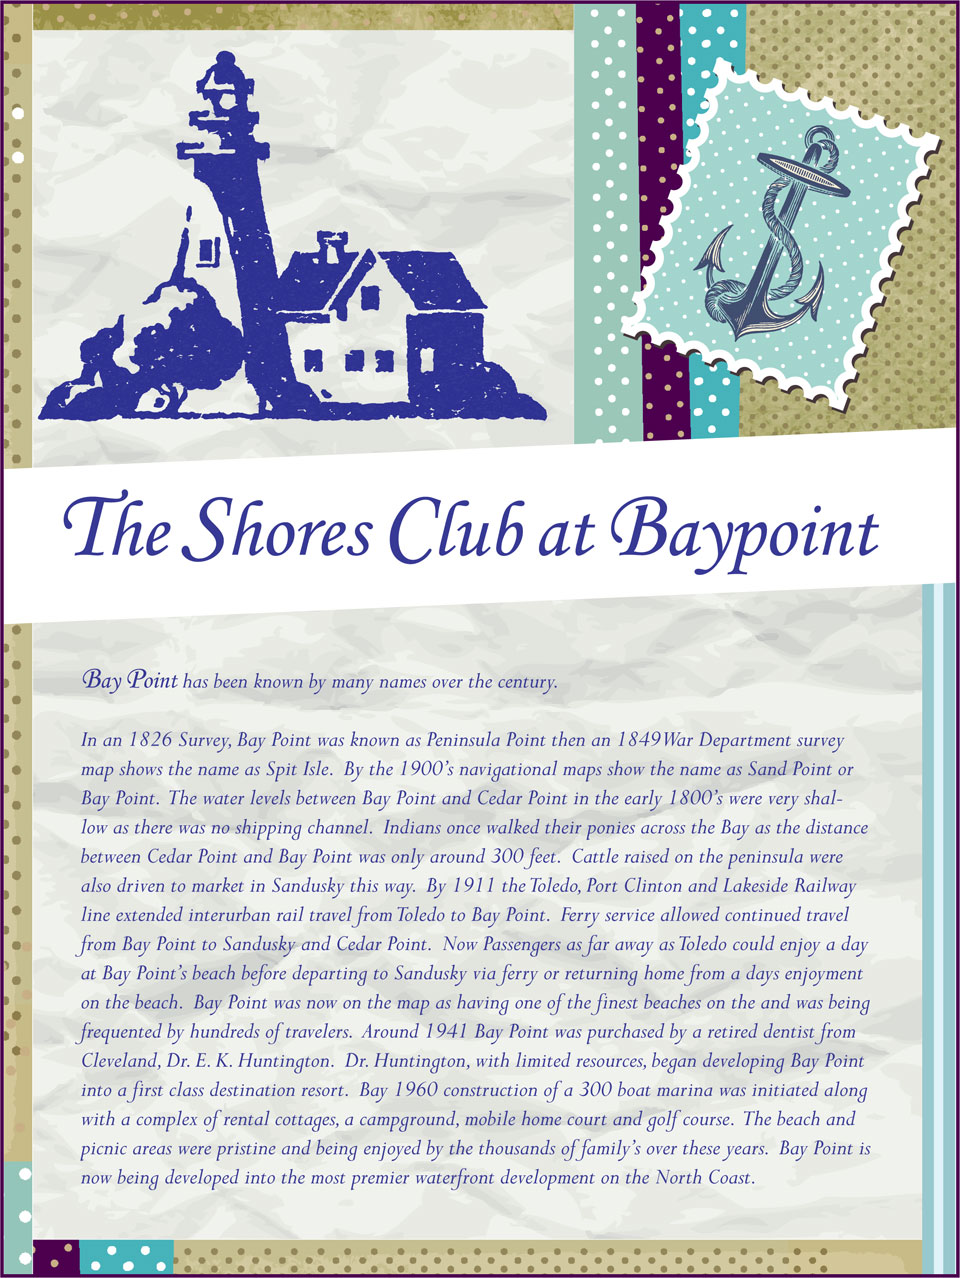 Baypoint Shores Club Menu Front Cover